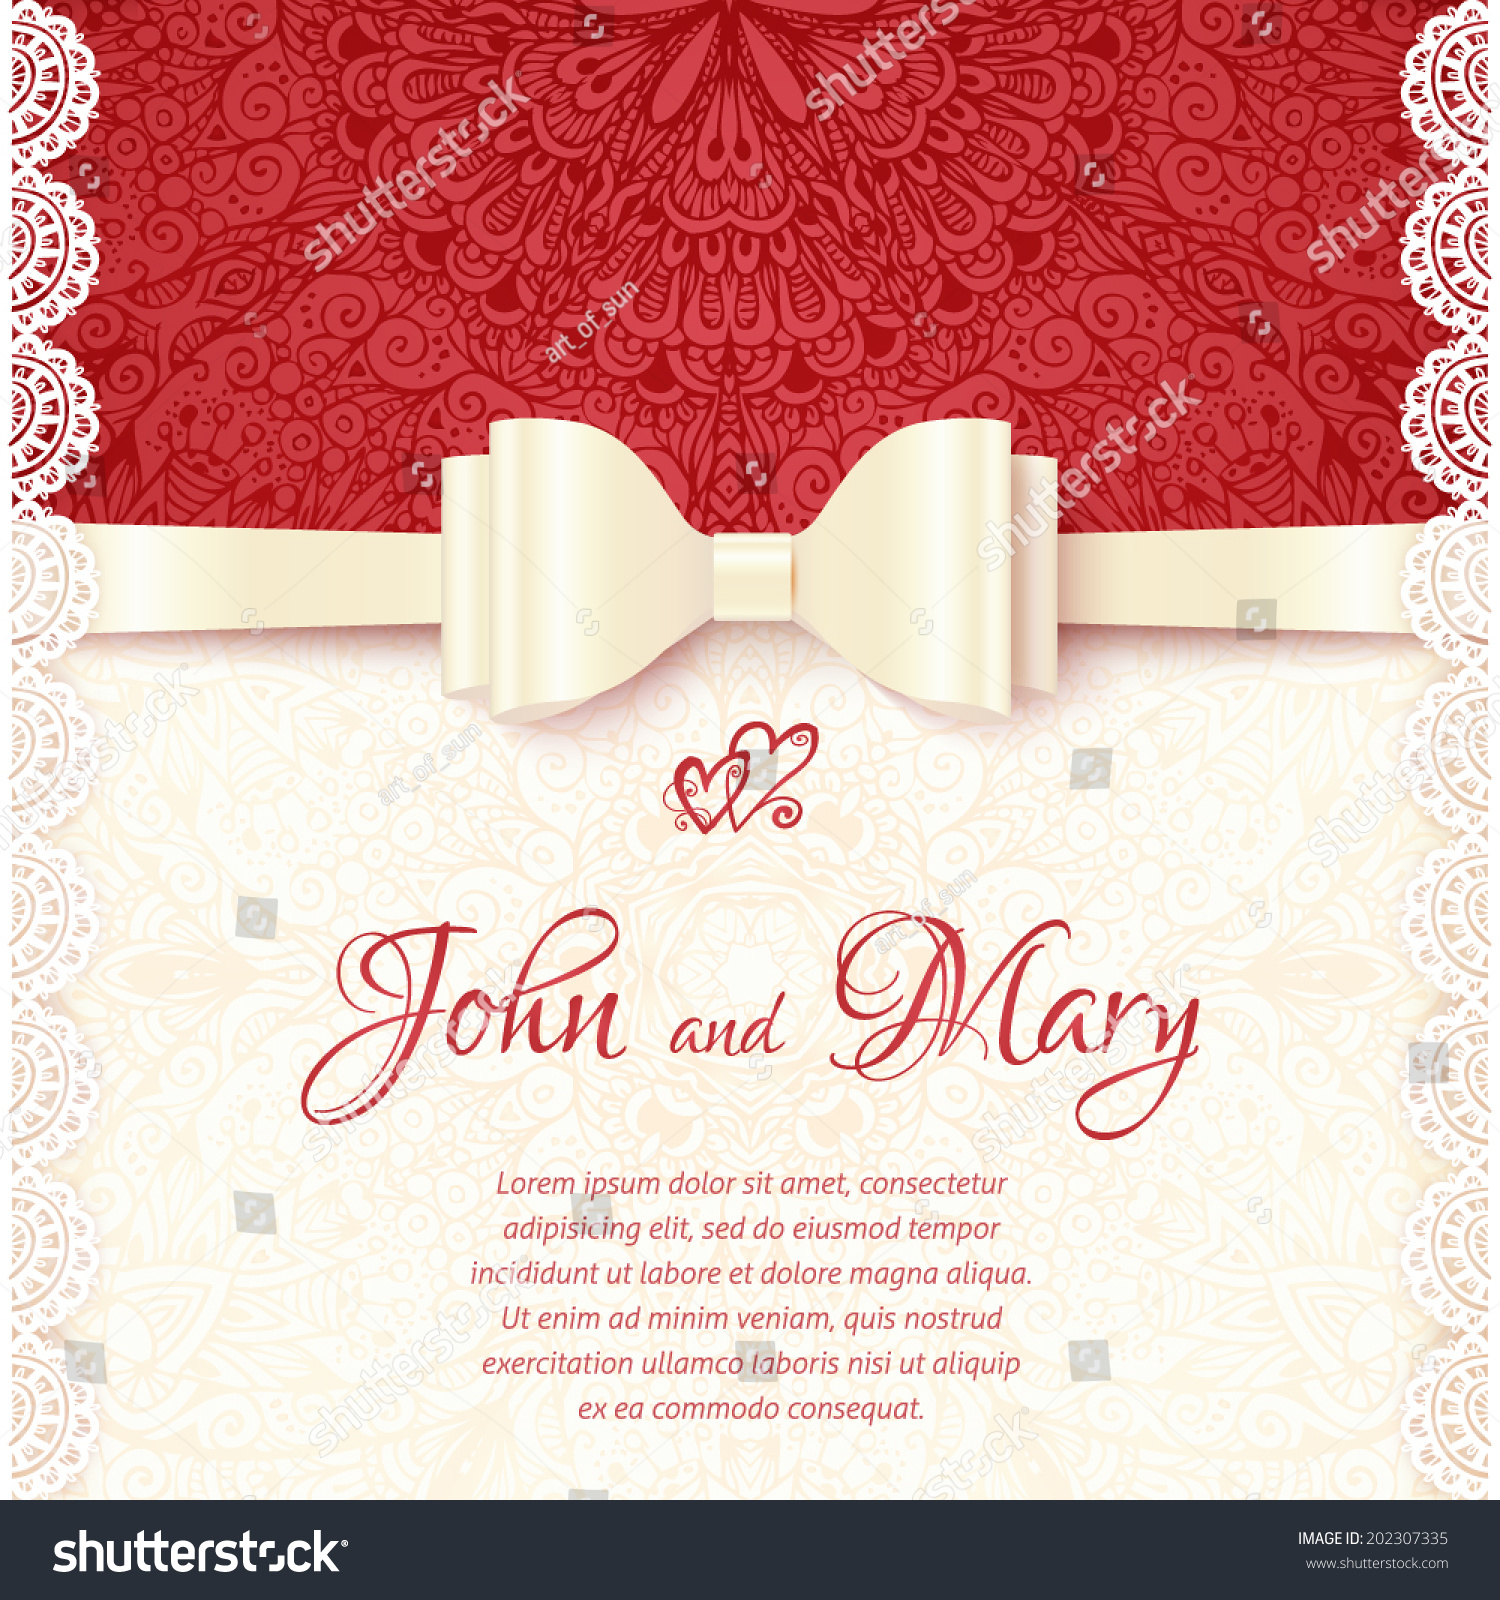 Vintage Vector Wedding Card Template Stock Vector 202307335 ...